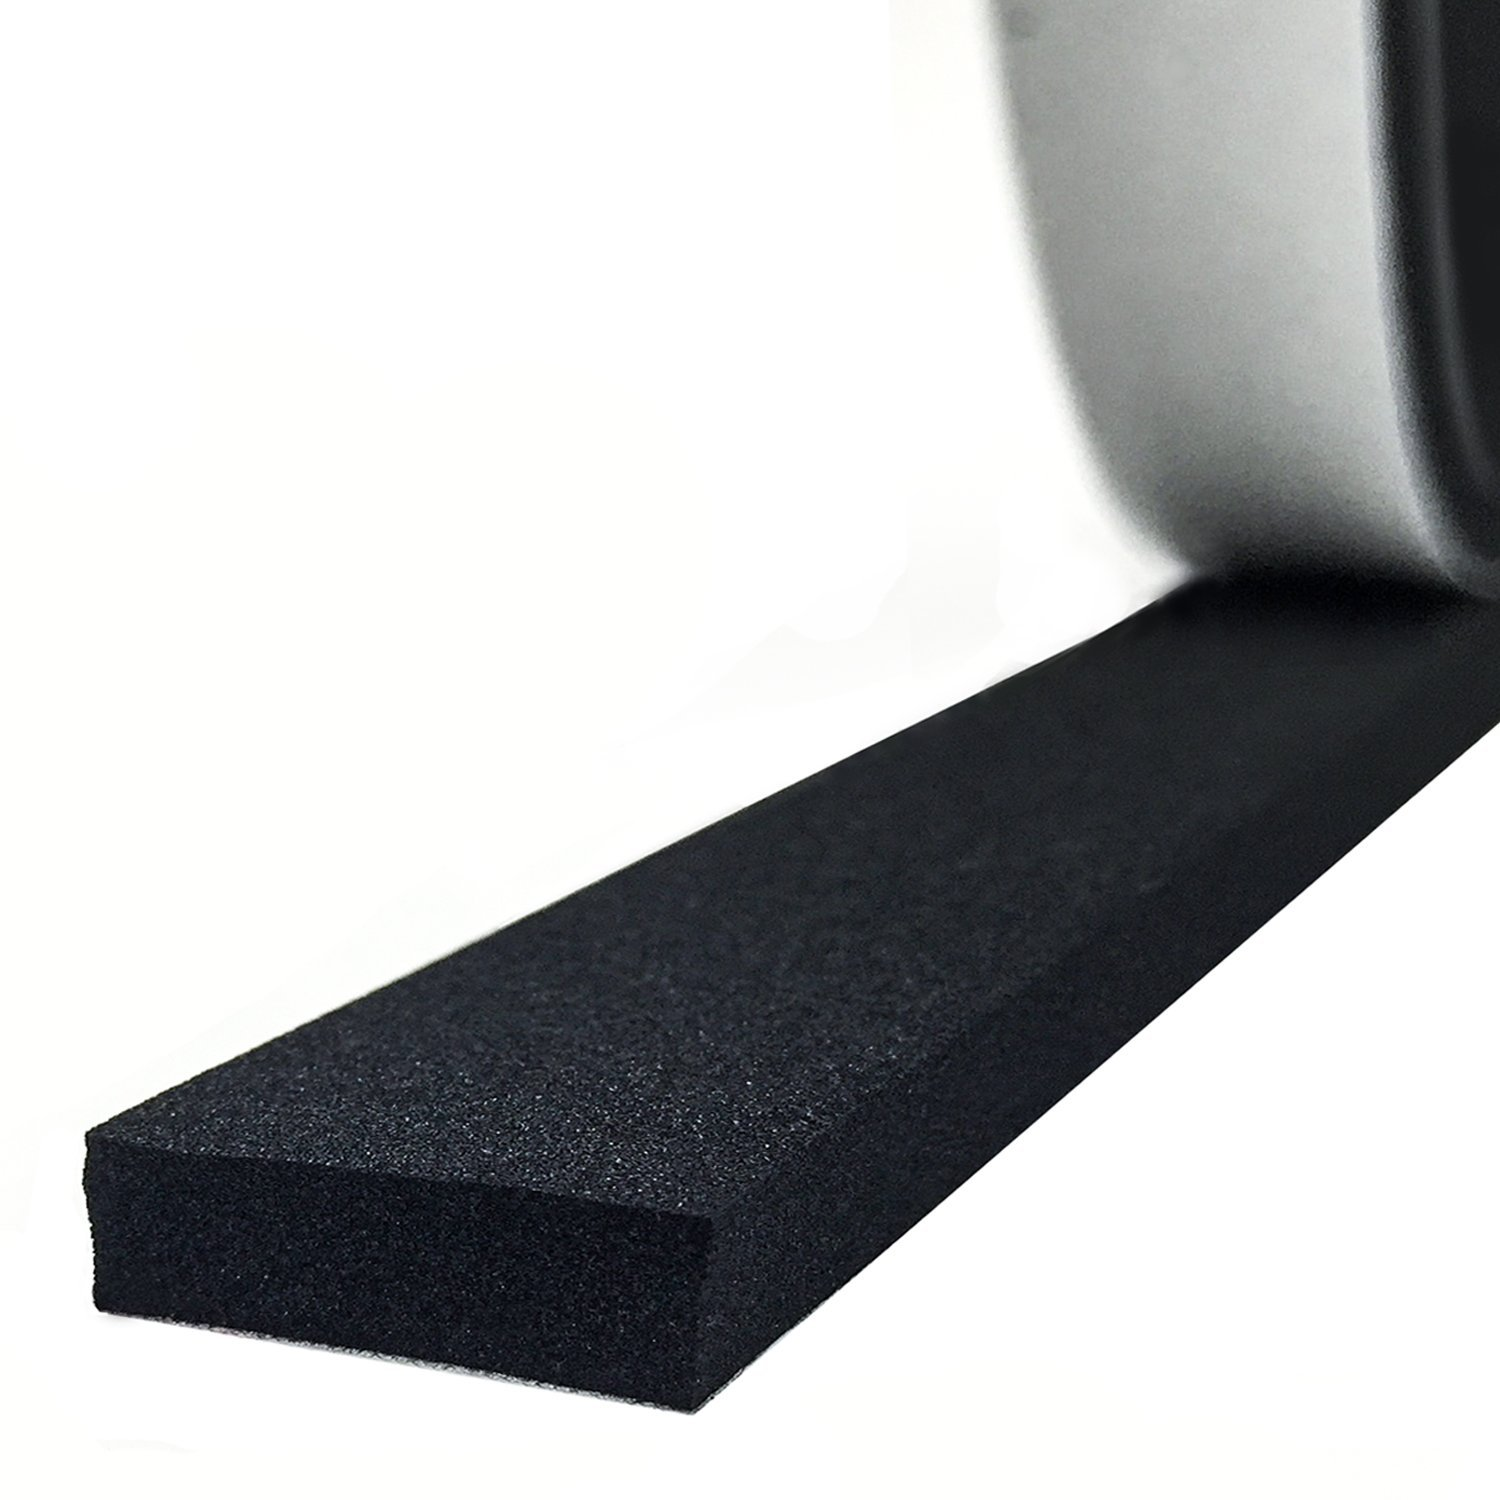 Foam Seal Tape High Density Foam Seal Strip Self Adhesive